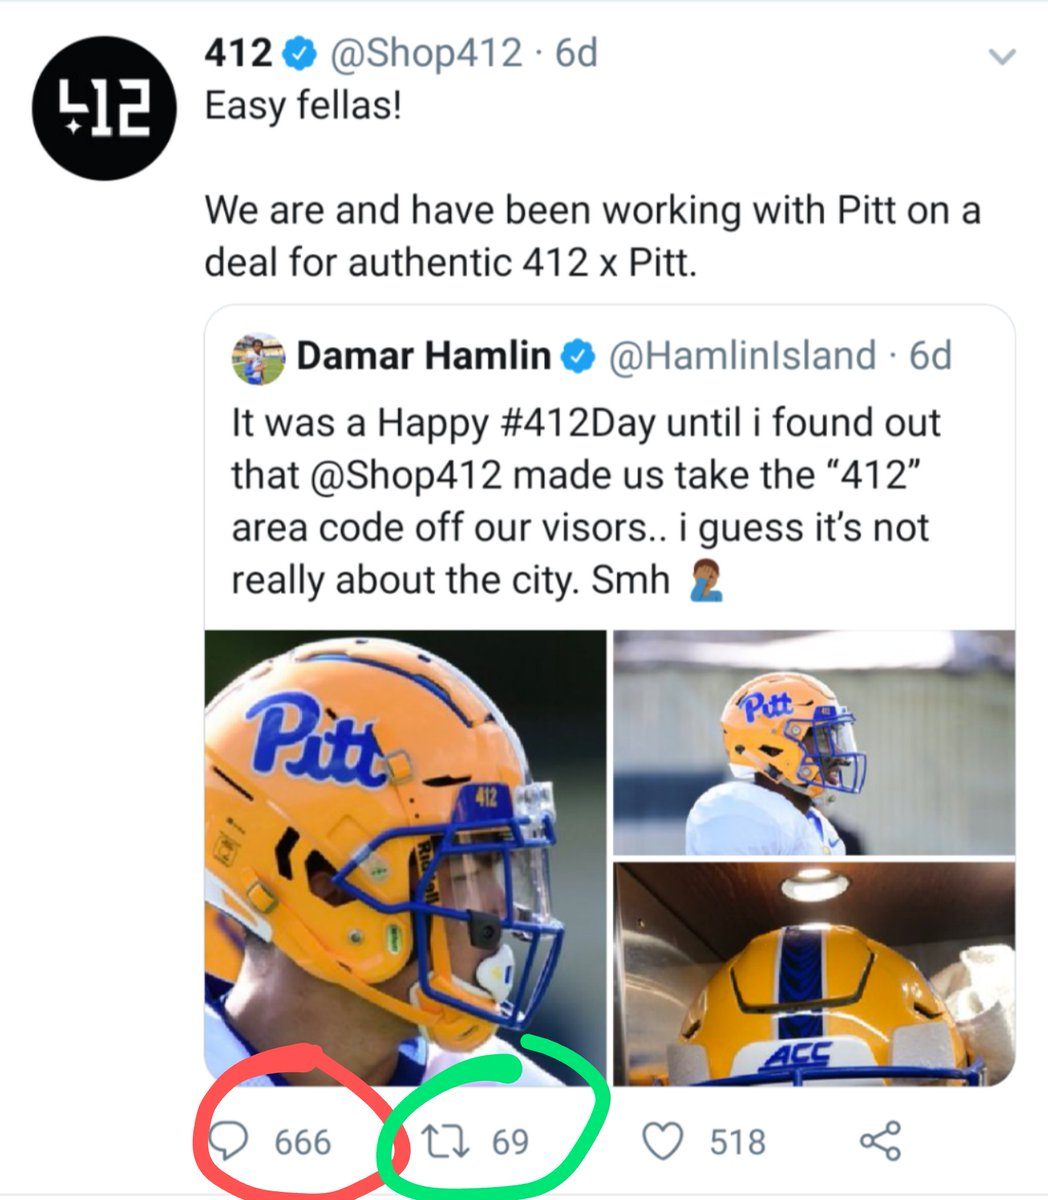 We're a week out from #412Day and @Shop412 hasn't tweeted since. The RTs were so nice they died and are in hell